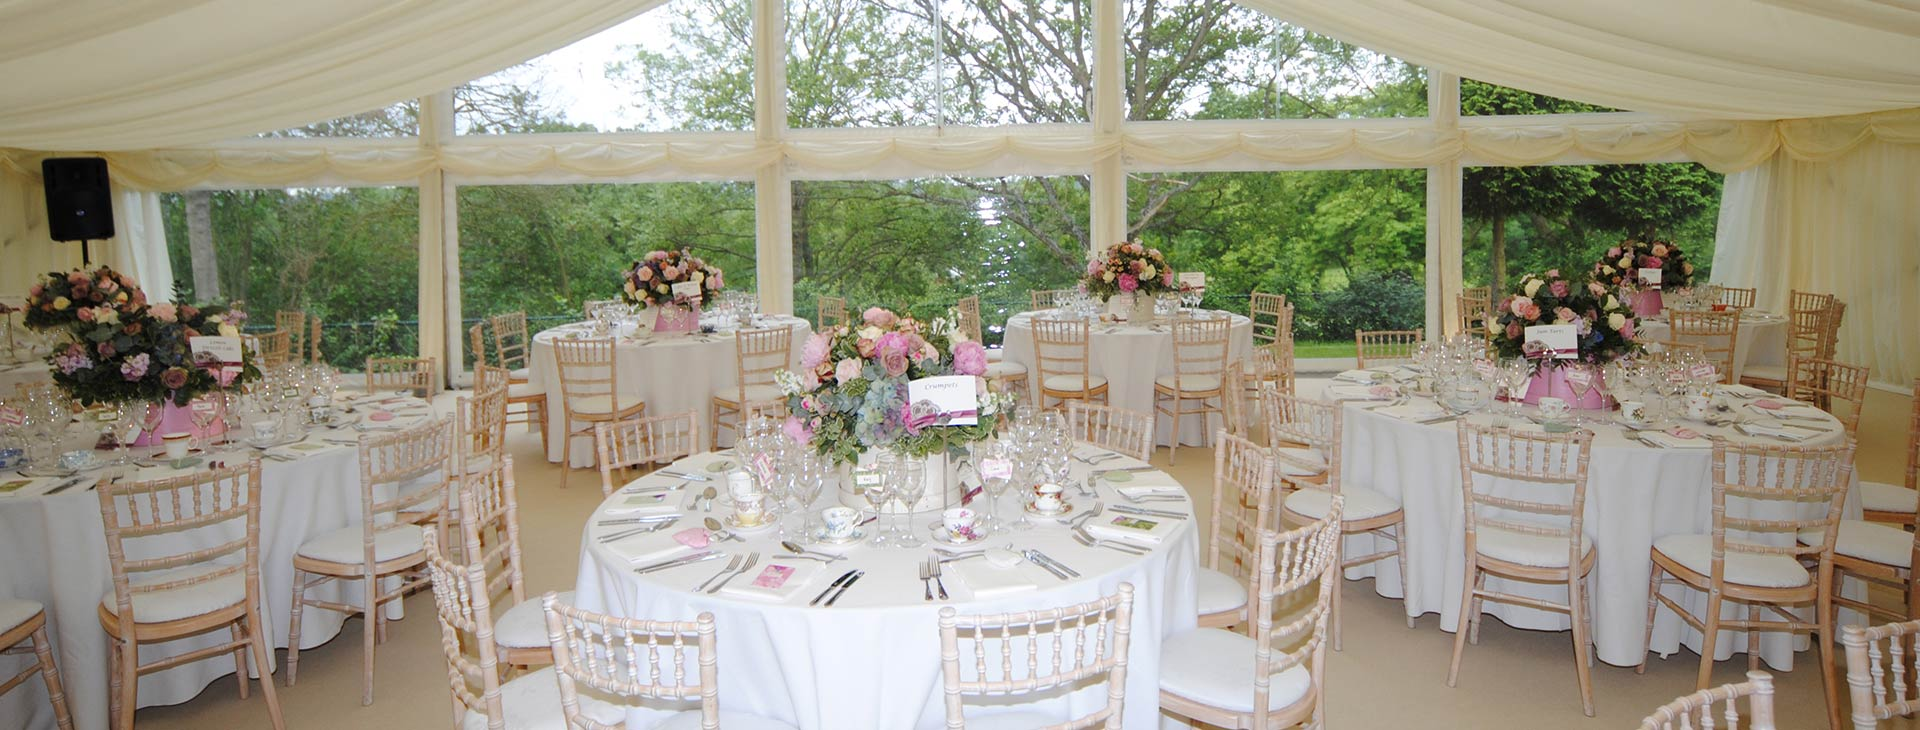 summer wedding in a marquee